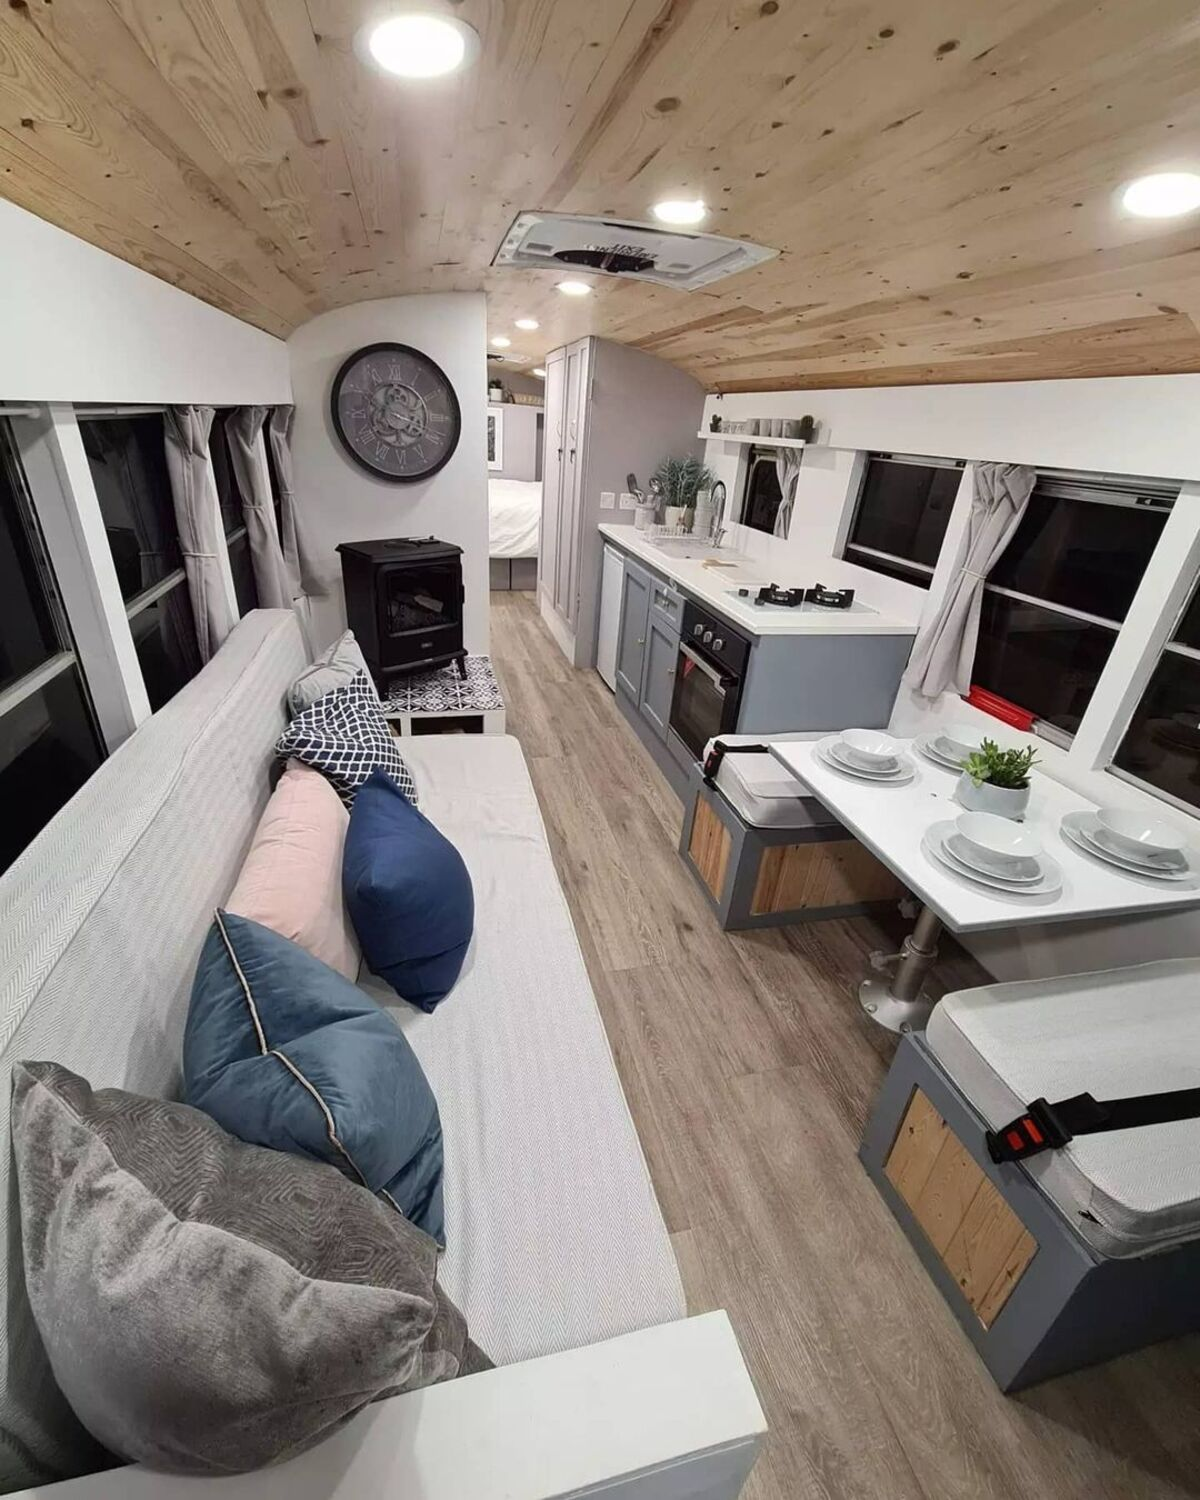 skoolie win 19 - British couple turned school bus into home complete with mini cinema - they are now raffling it off